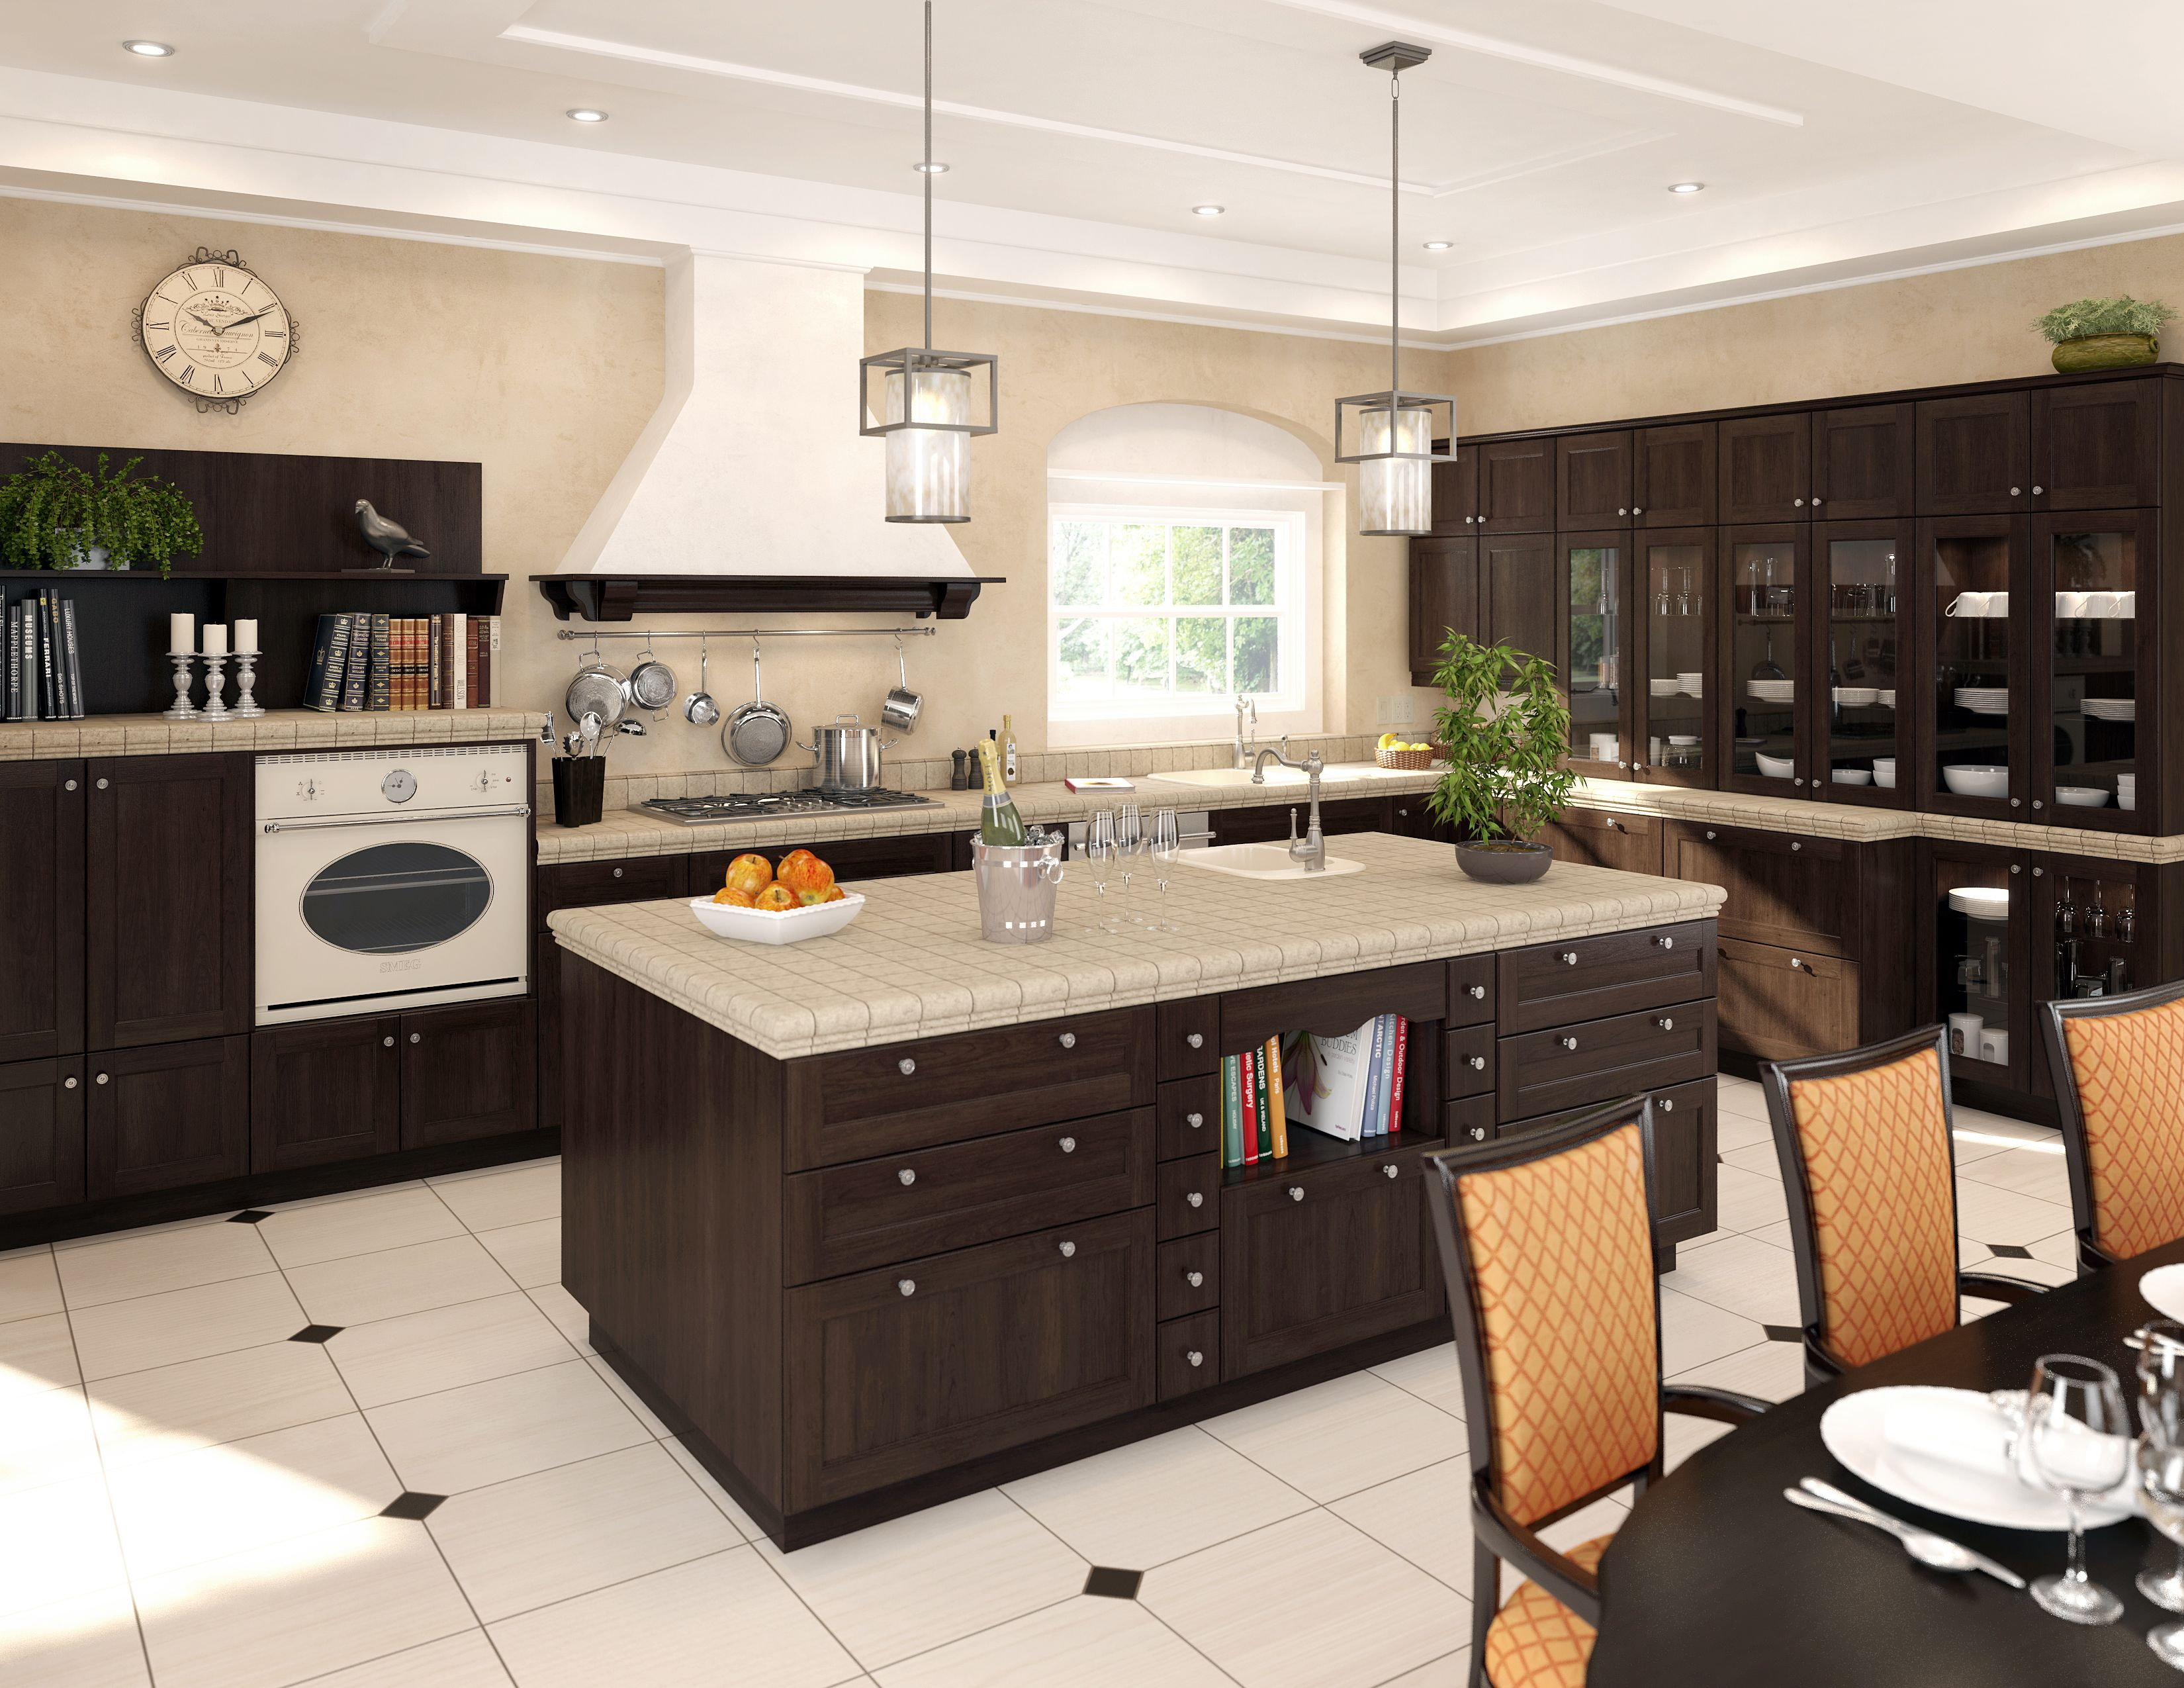 Eurostyle Buying Guides Home Depot Canada Kitchen Cabinets Home Depot Top Kitchen Cabinets Quality Kitchen Cabinets